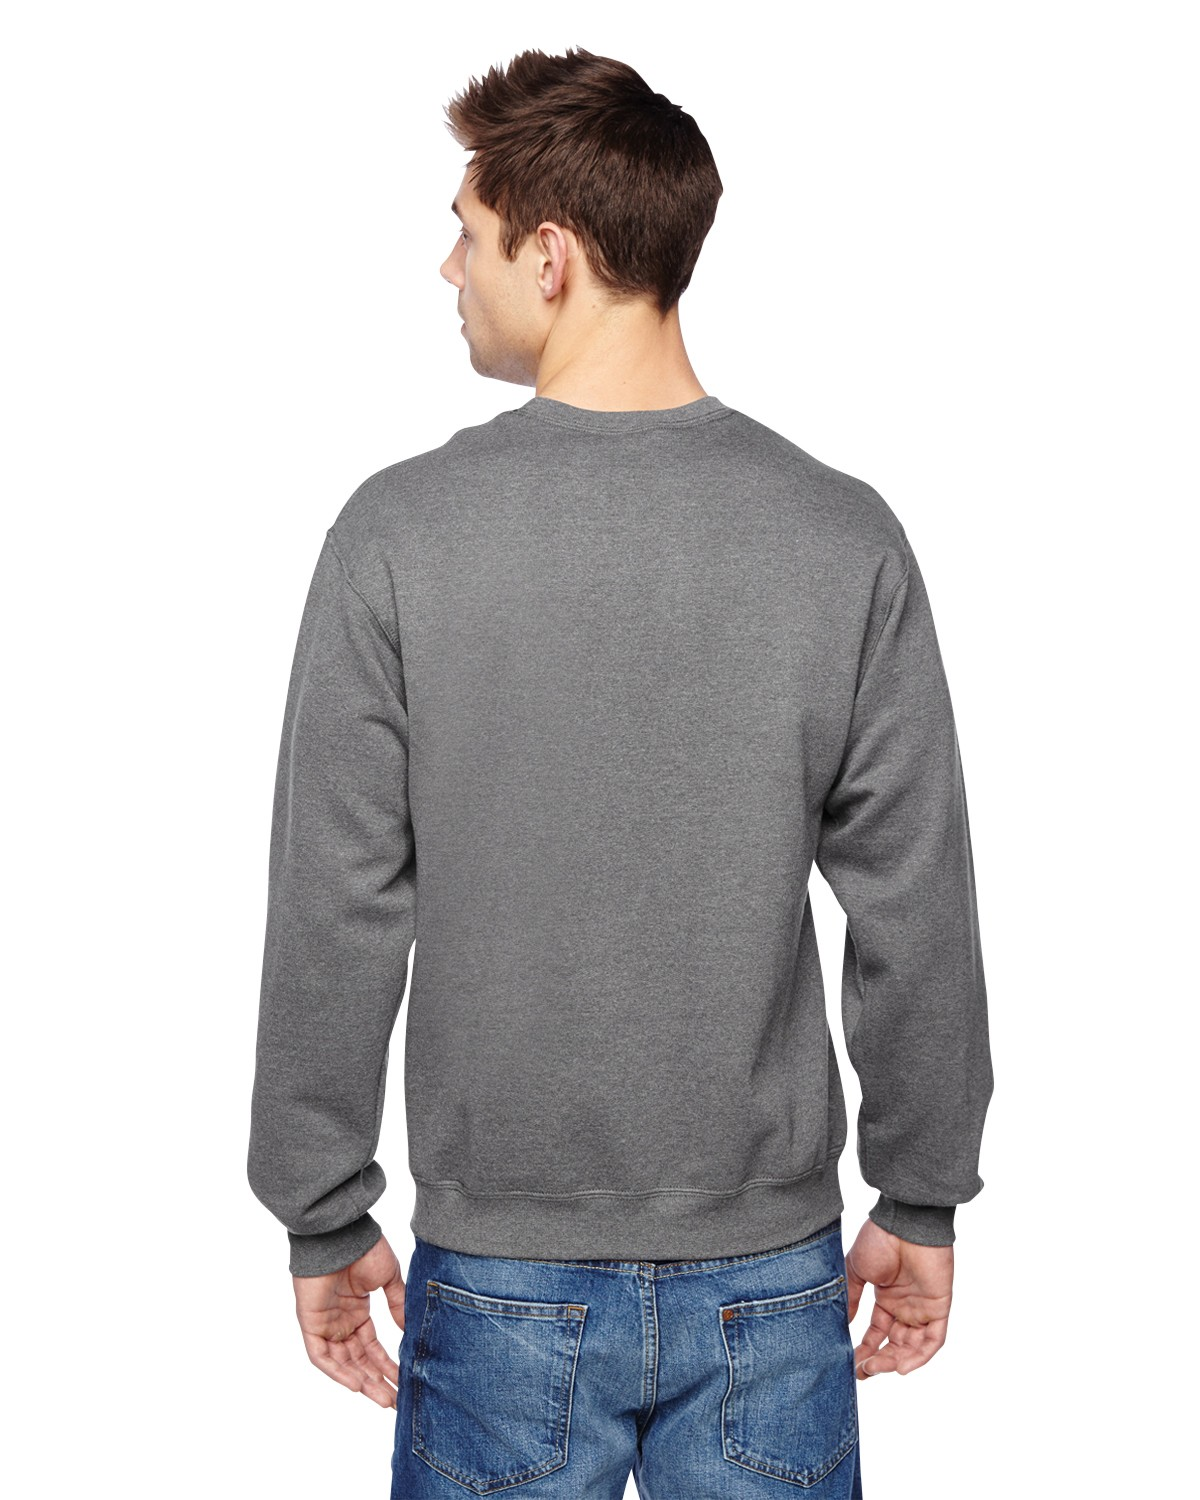 SF72R Fruit of the Loom CHARCOAL HEATHER